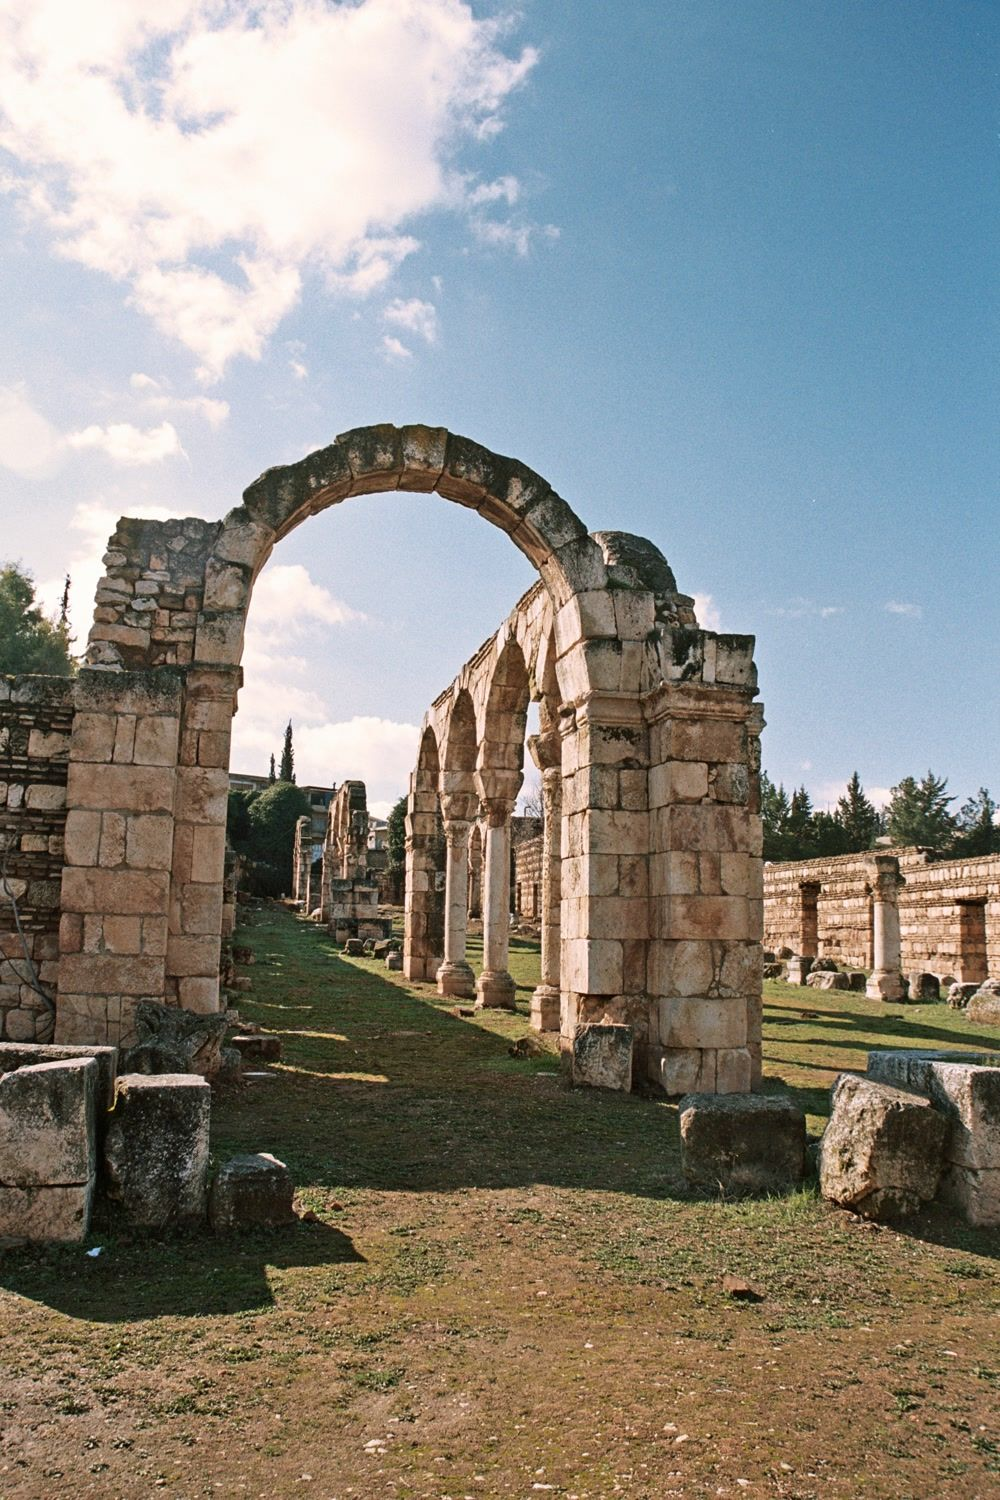 title: Anjar Arches and Stone Ruins